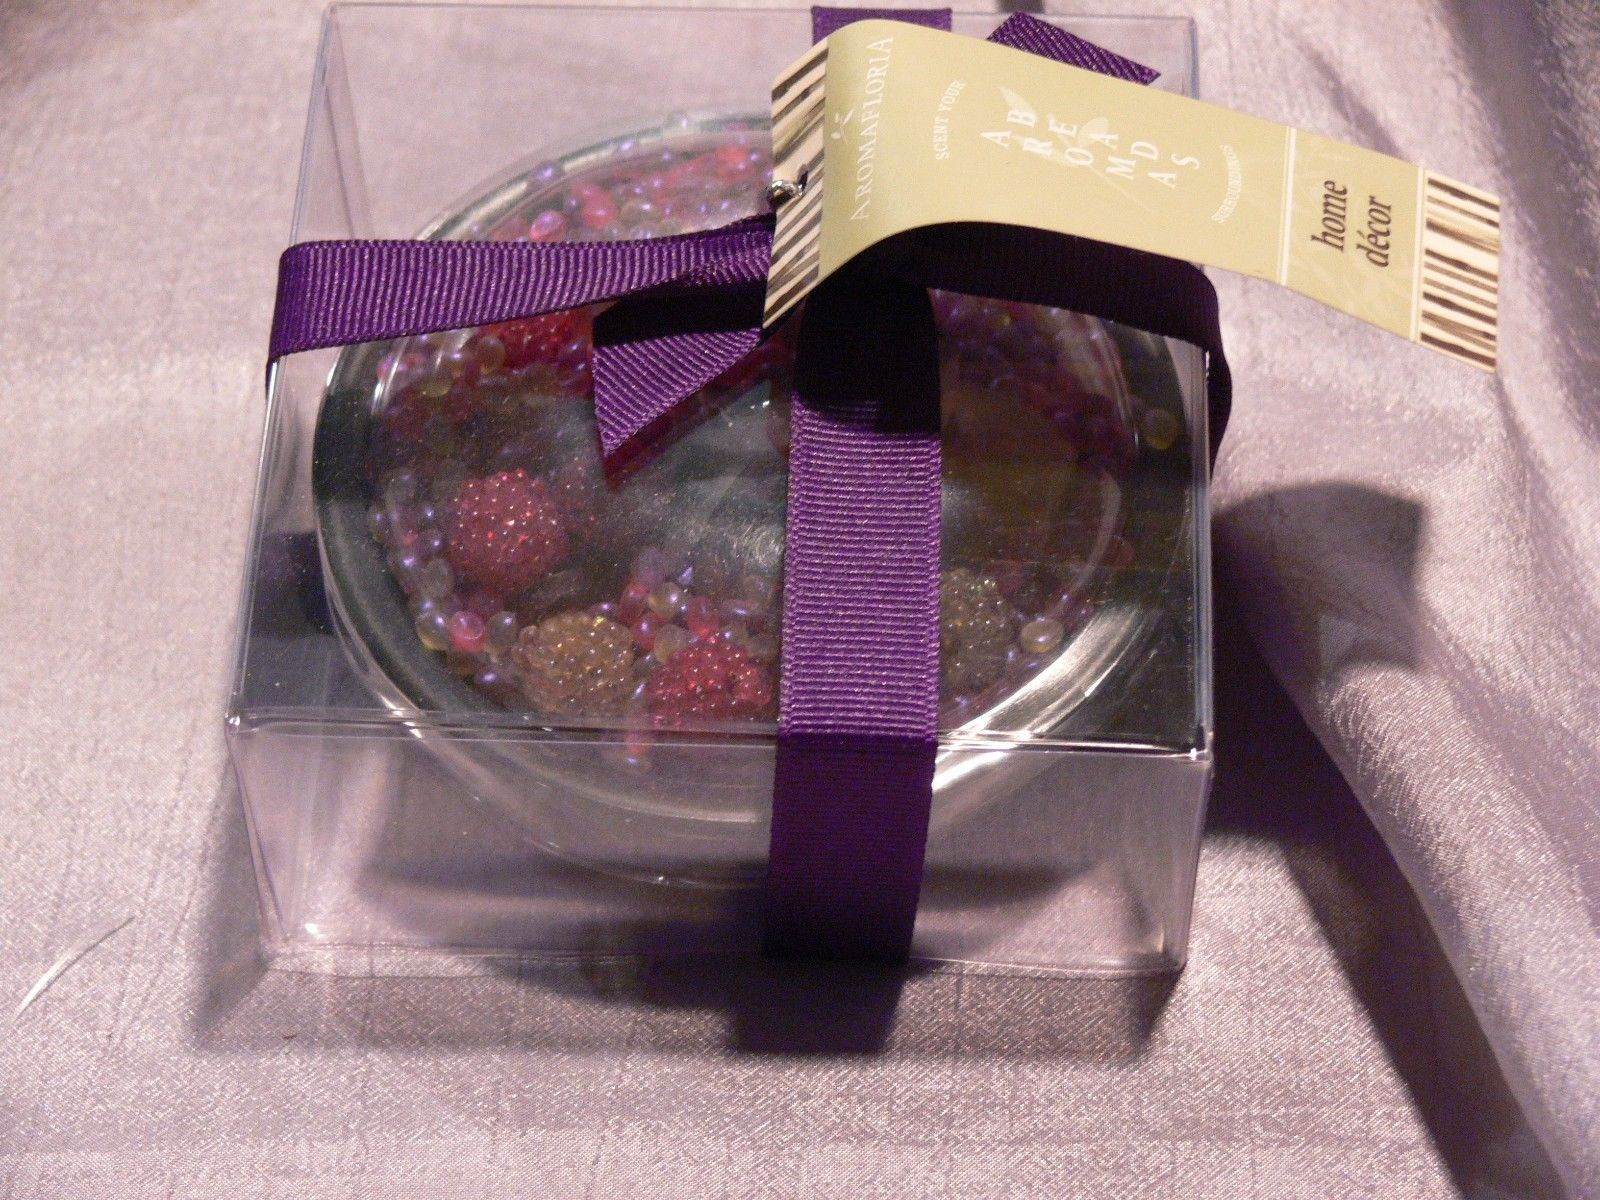 PLUMERIA AROMA BEADS IN BLACK GLASS DISH -GIFT BOXED - PURPLE - SET OF 2 -  NEW